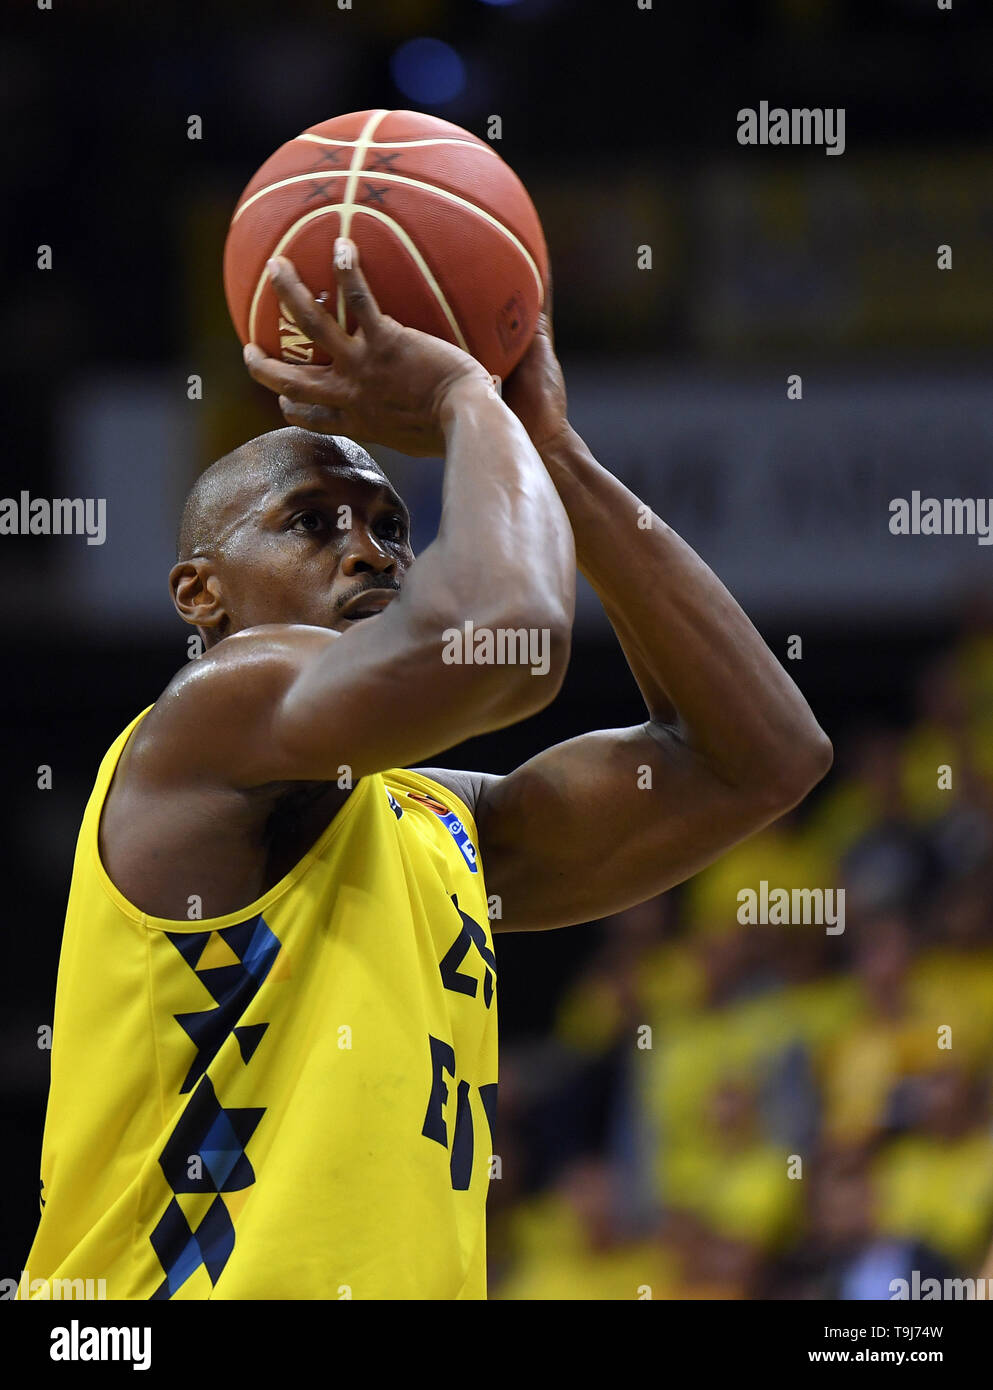 Oldenburg, Germany. 19th May, 2019. Basketball: Bundesliga, EWE Baskets Oldenburg - Telekom Baskets Bonn, championship round, quarter finals, 1st matchday. Oldenburg's Rickey Paulding at the free-throw. Credit: Carmen Jaspersen/dpa/Alamy Live News - Stock Image